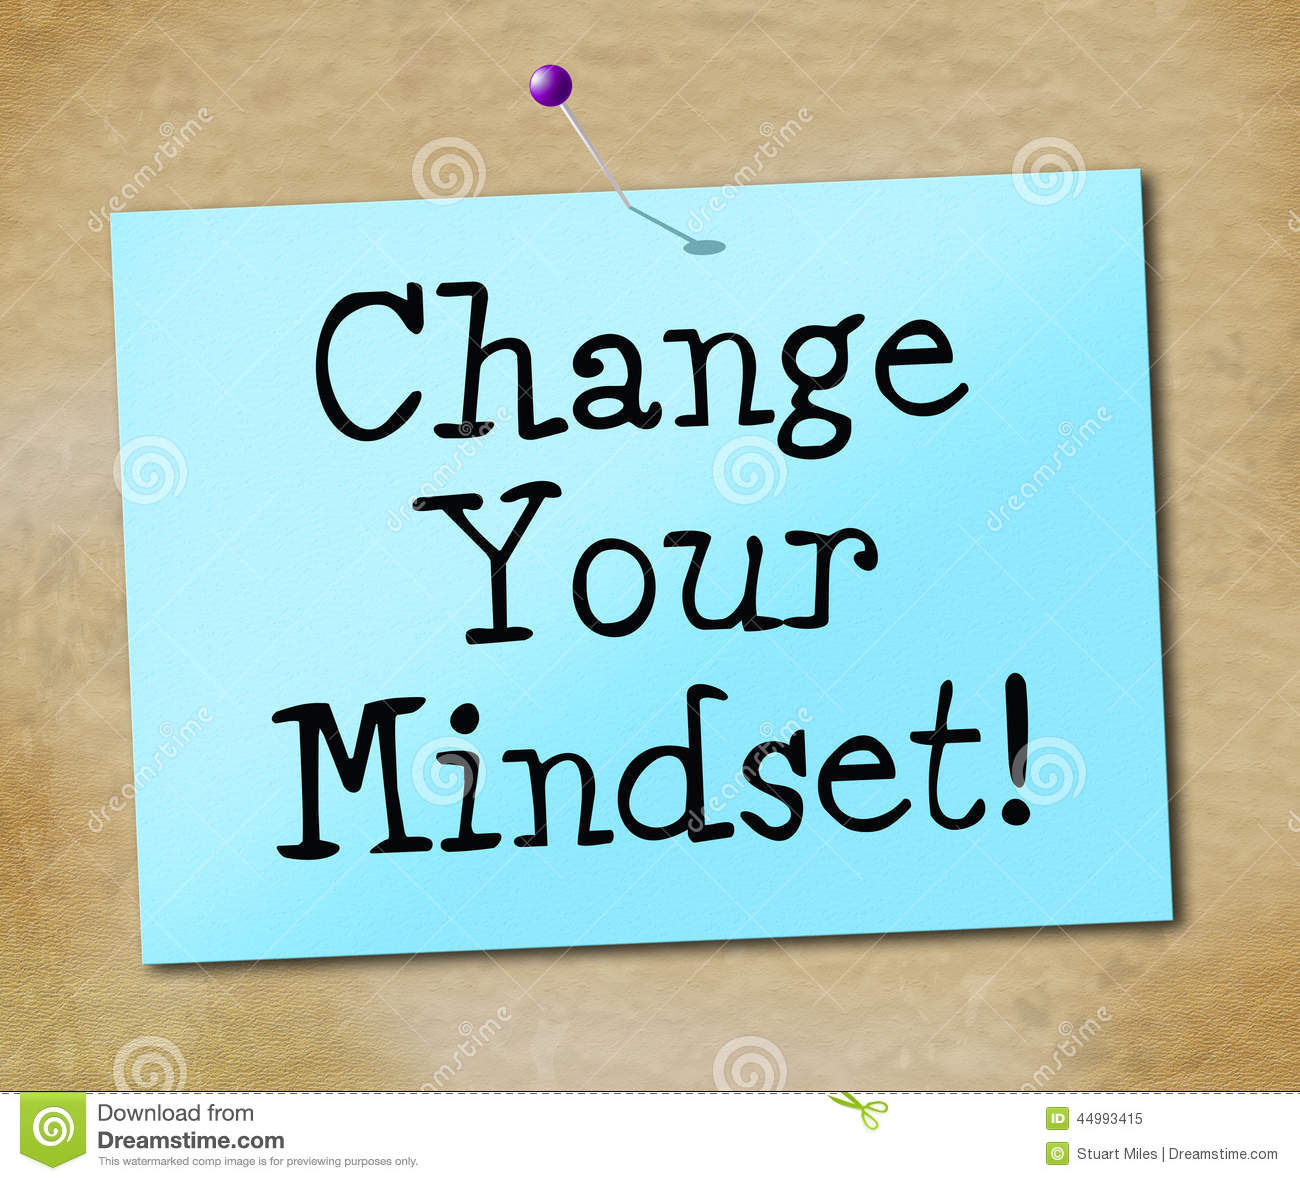 how to change the mindset of a person